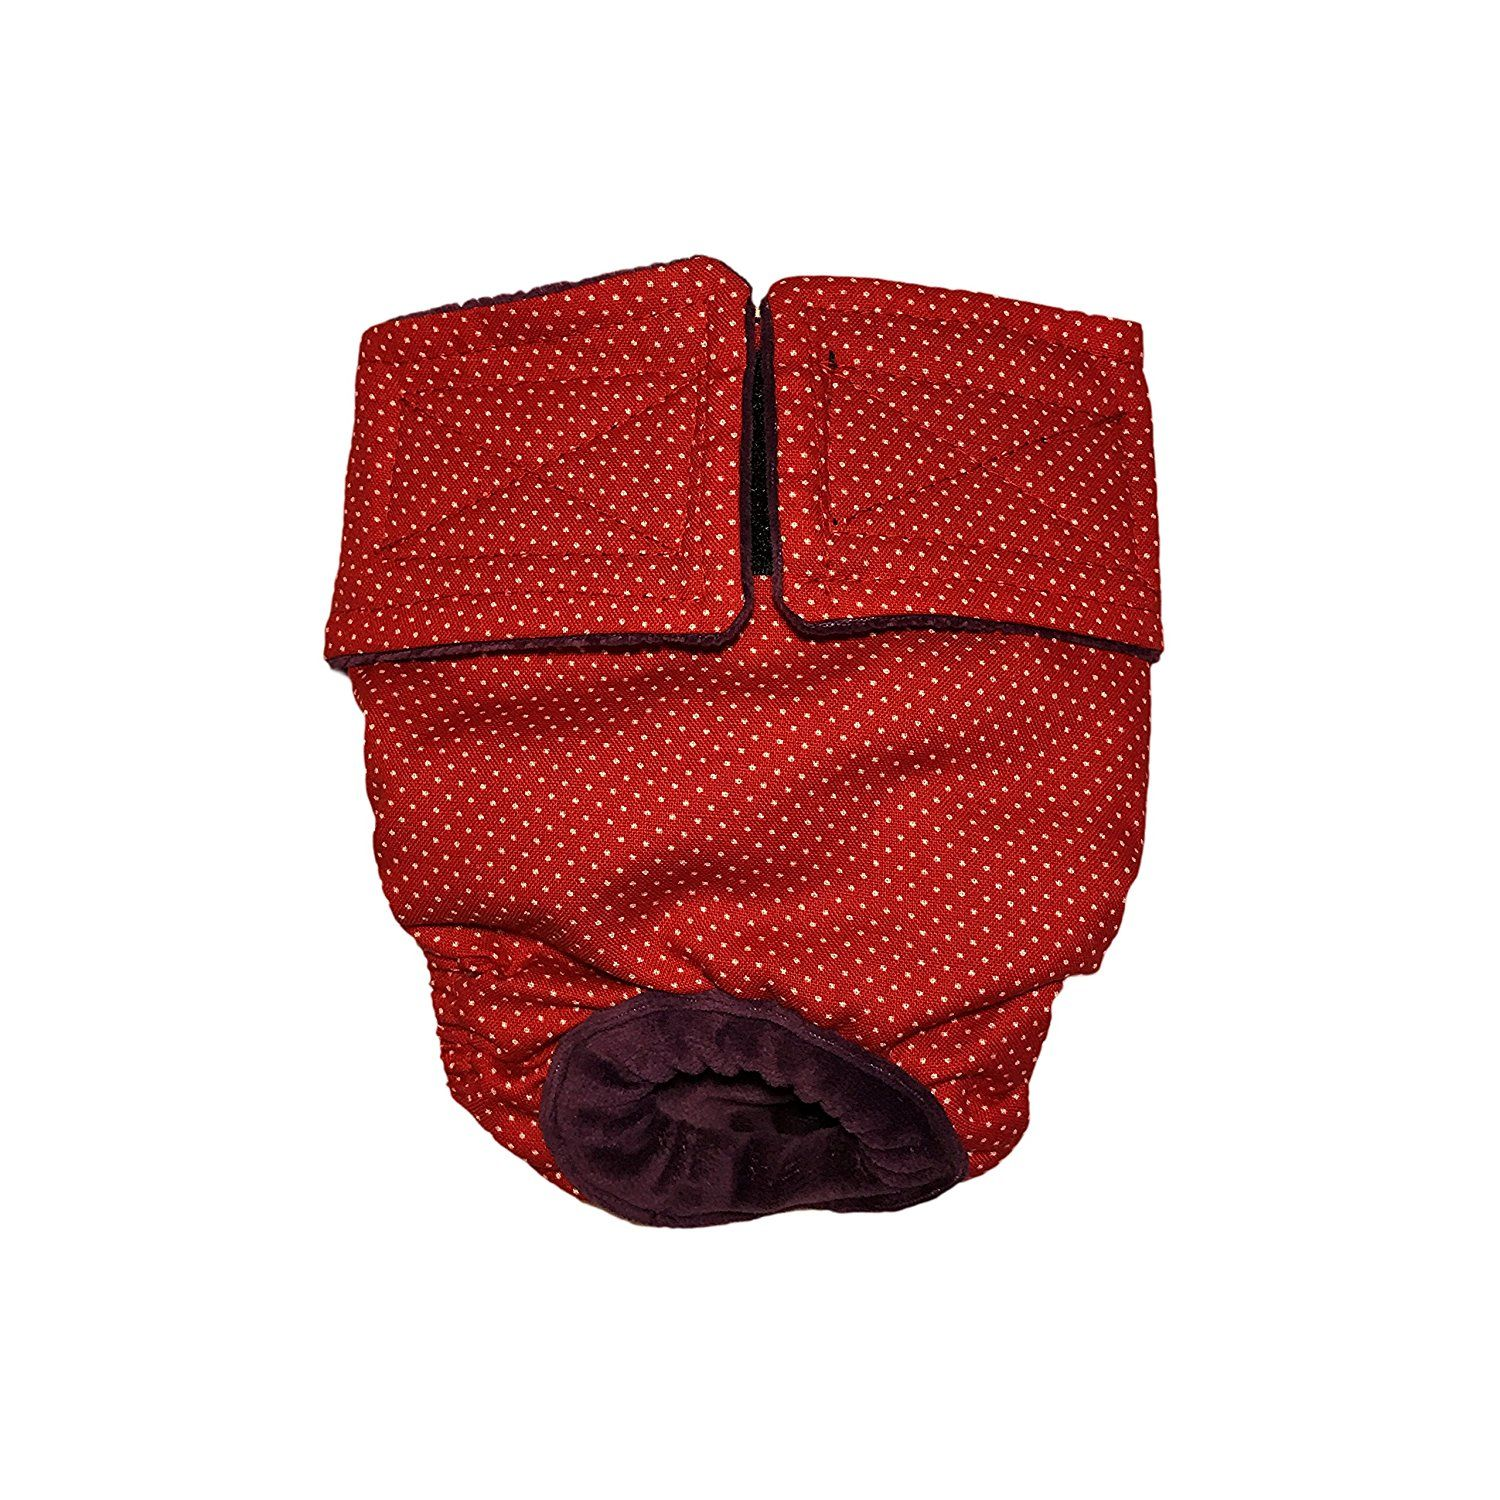 Dog Diapers - Made in USA - Small White Polka Dot on Red Washable Dog Diaper for Incontinence, Housetraining and Dogs in Heat *** Find out more details by clicking the image : Cat litter